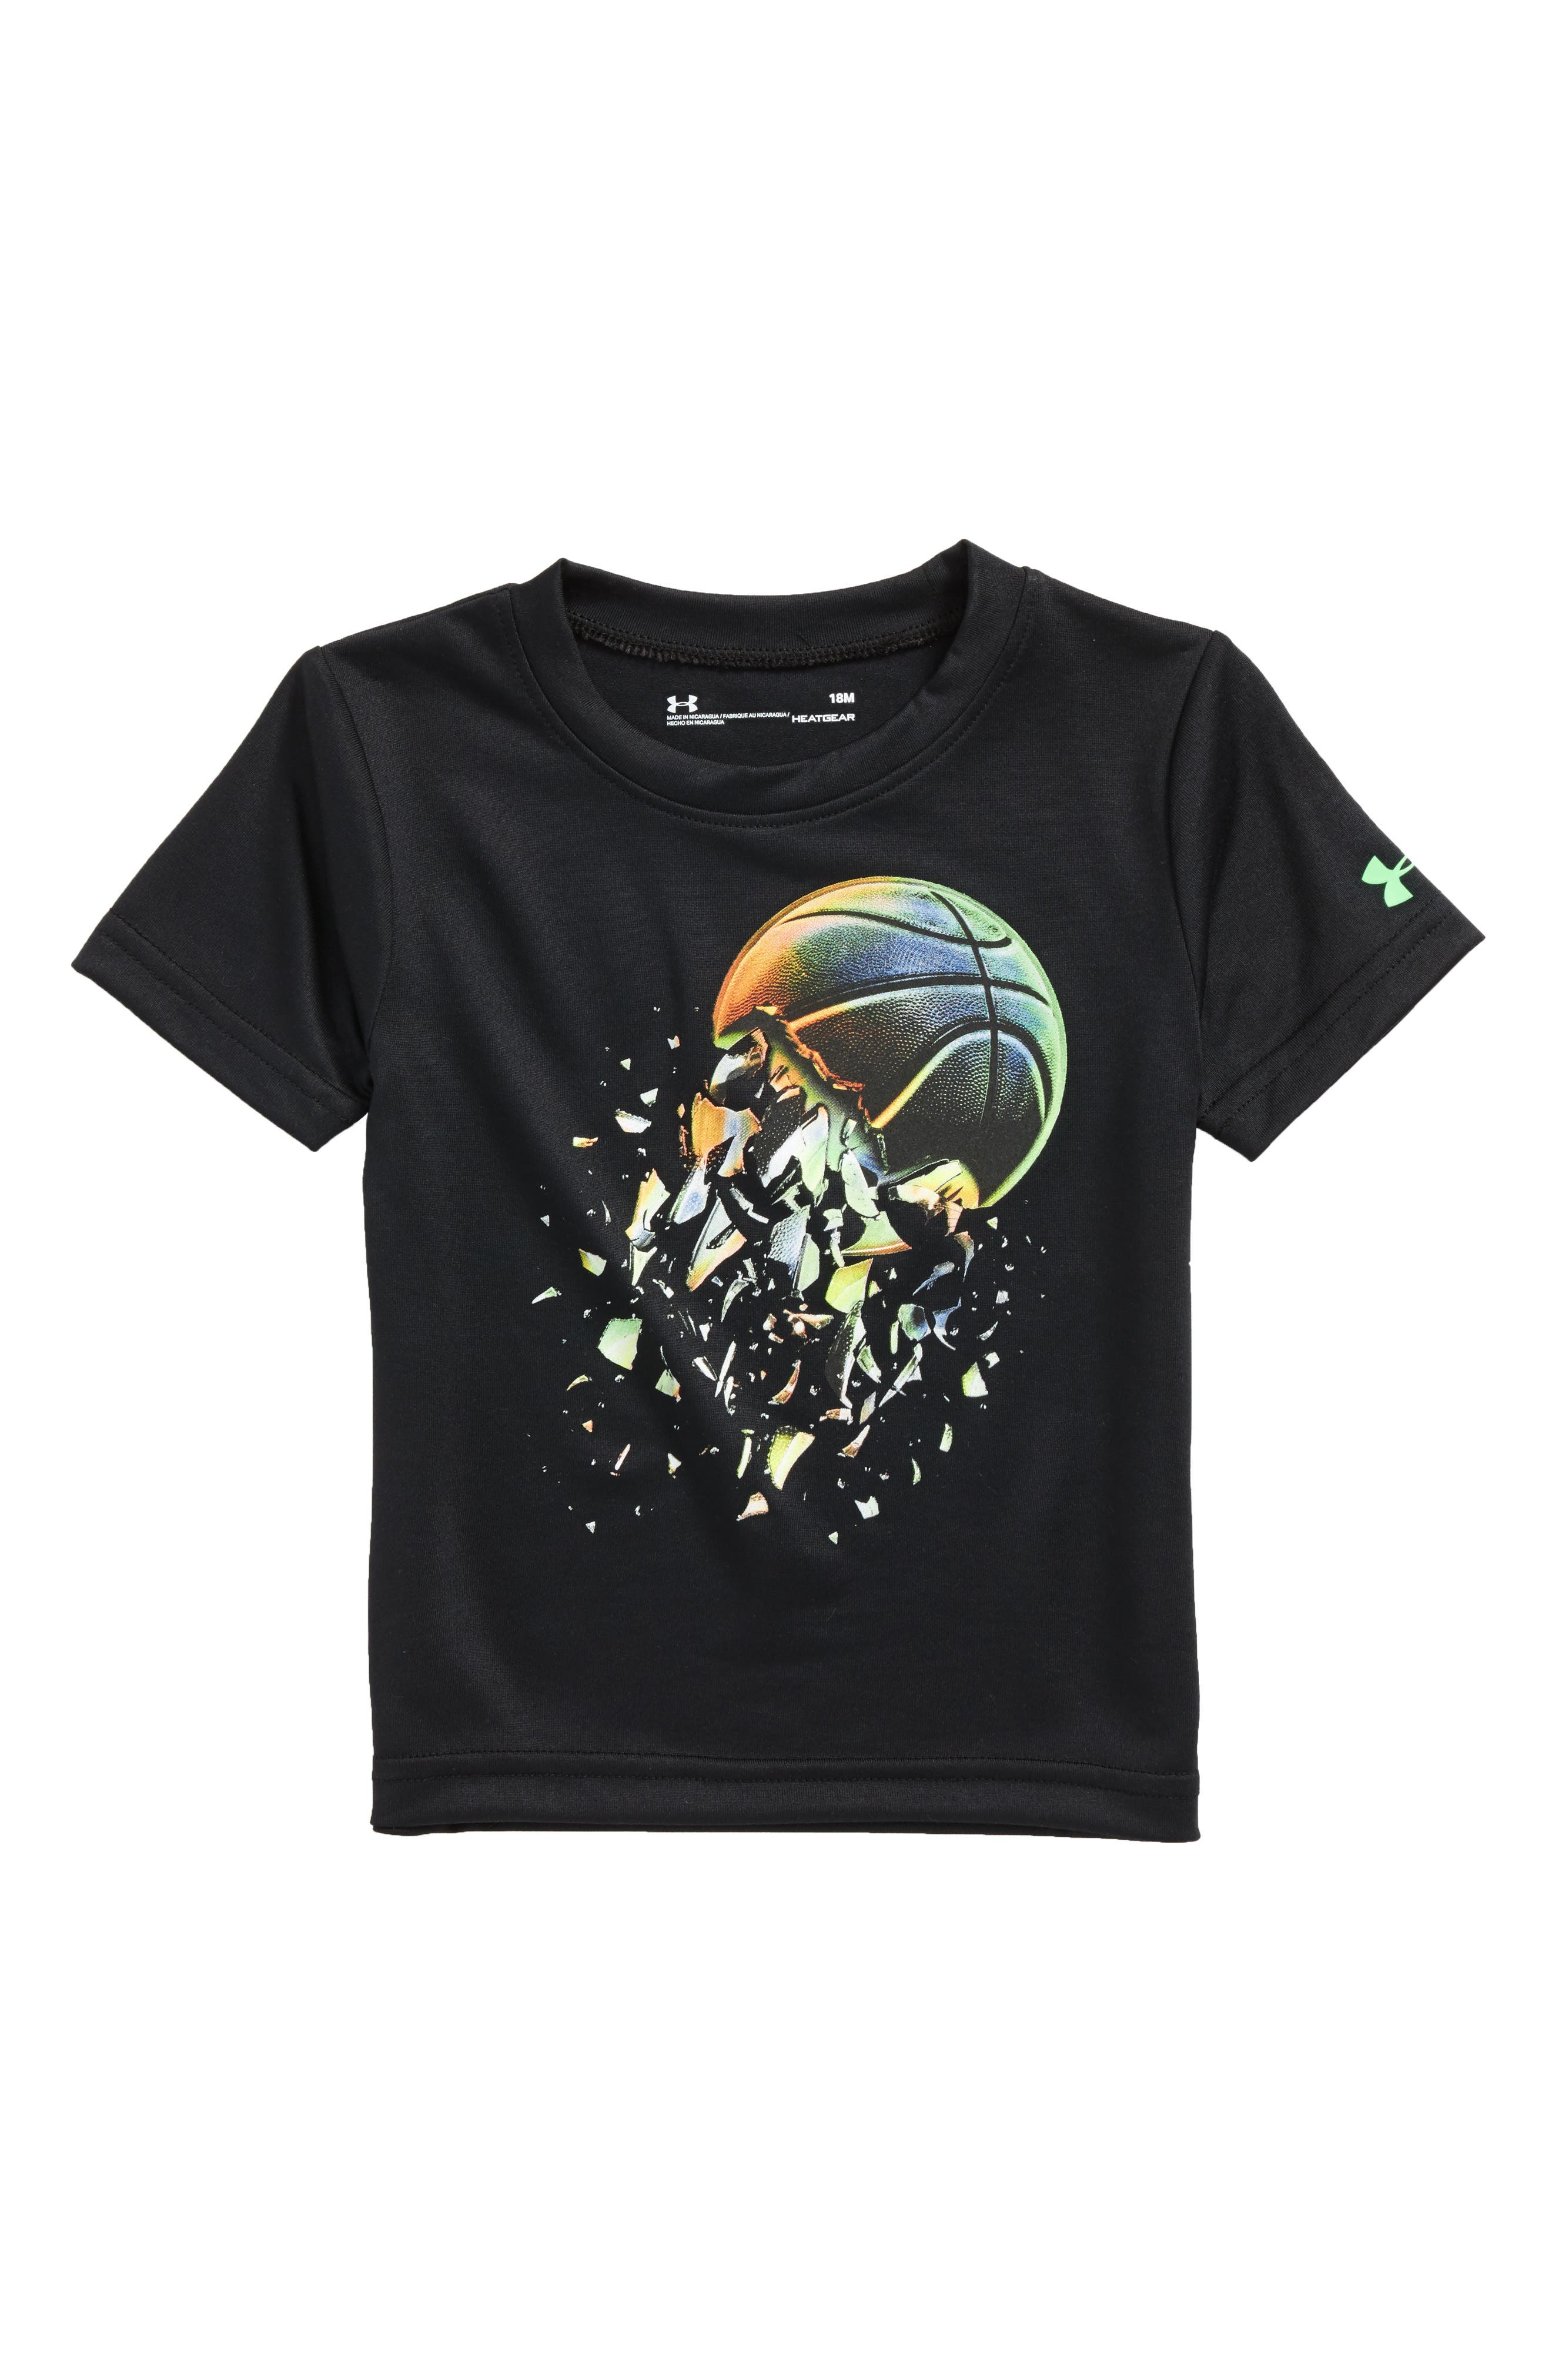 Alternate Image 1 Selected - Under Armour Basketball Explosion Graphic HeatGear® T-Shirt (Baby Boys)